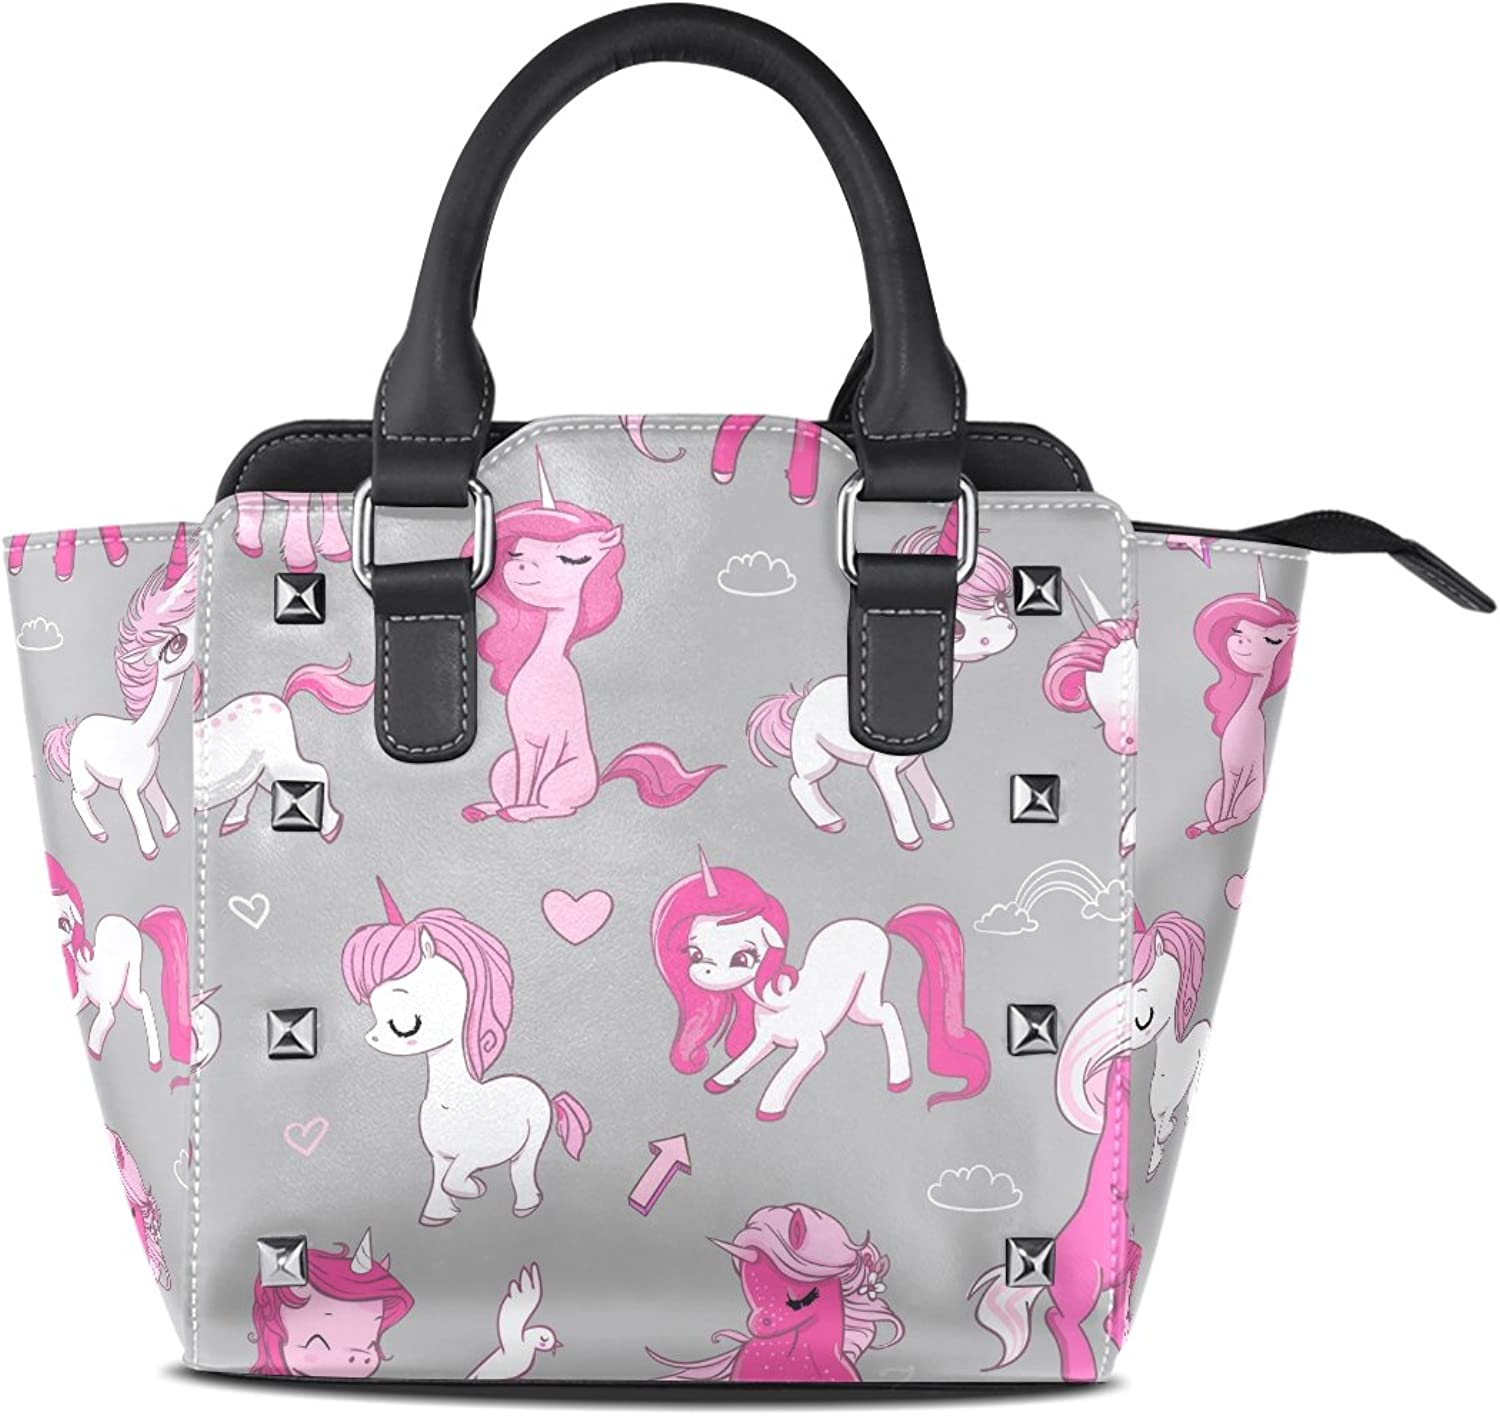 Sunlome Pink Unicorns Print Handbags Women's PU Leather Top-Handle Shoulder Bags